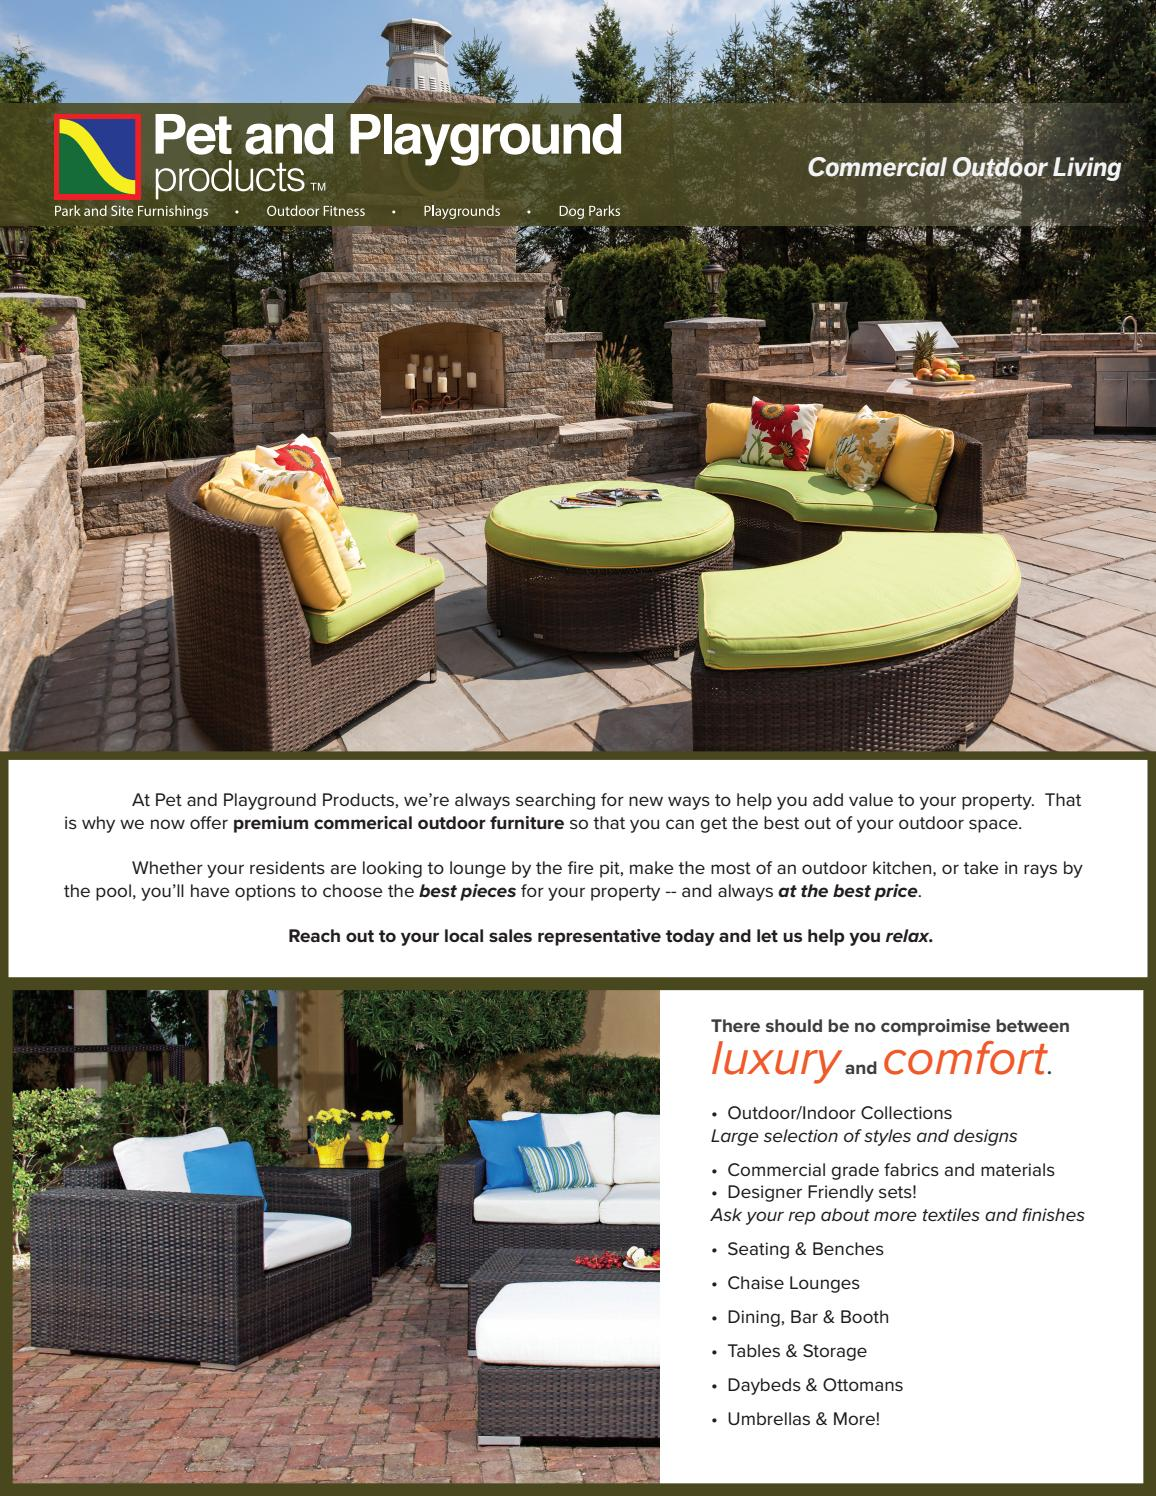 Peachy Pnp Outdoor Furniture One Sheet By Pet And Playground Beatyapartments Chair Design Images Beatyapartmentscom